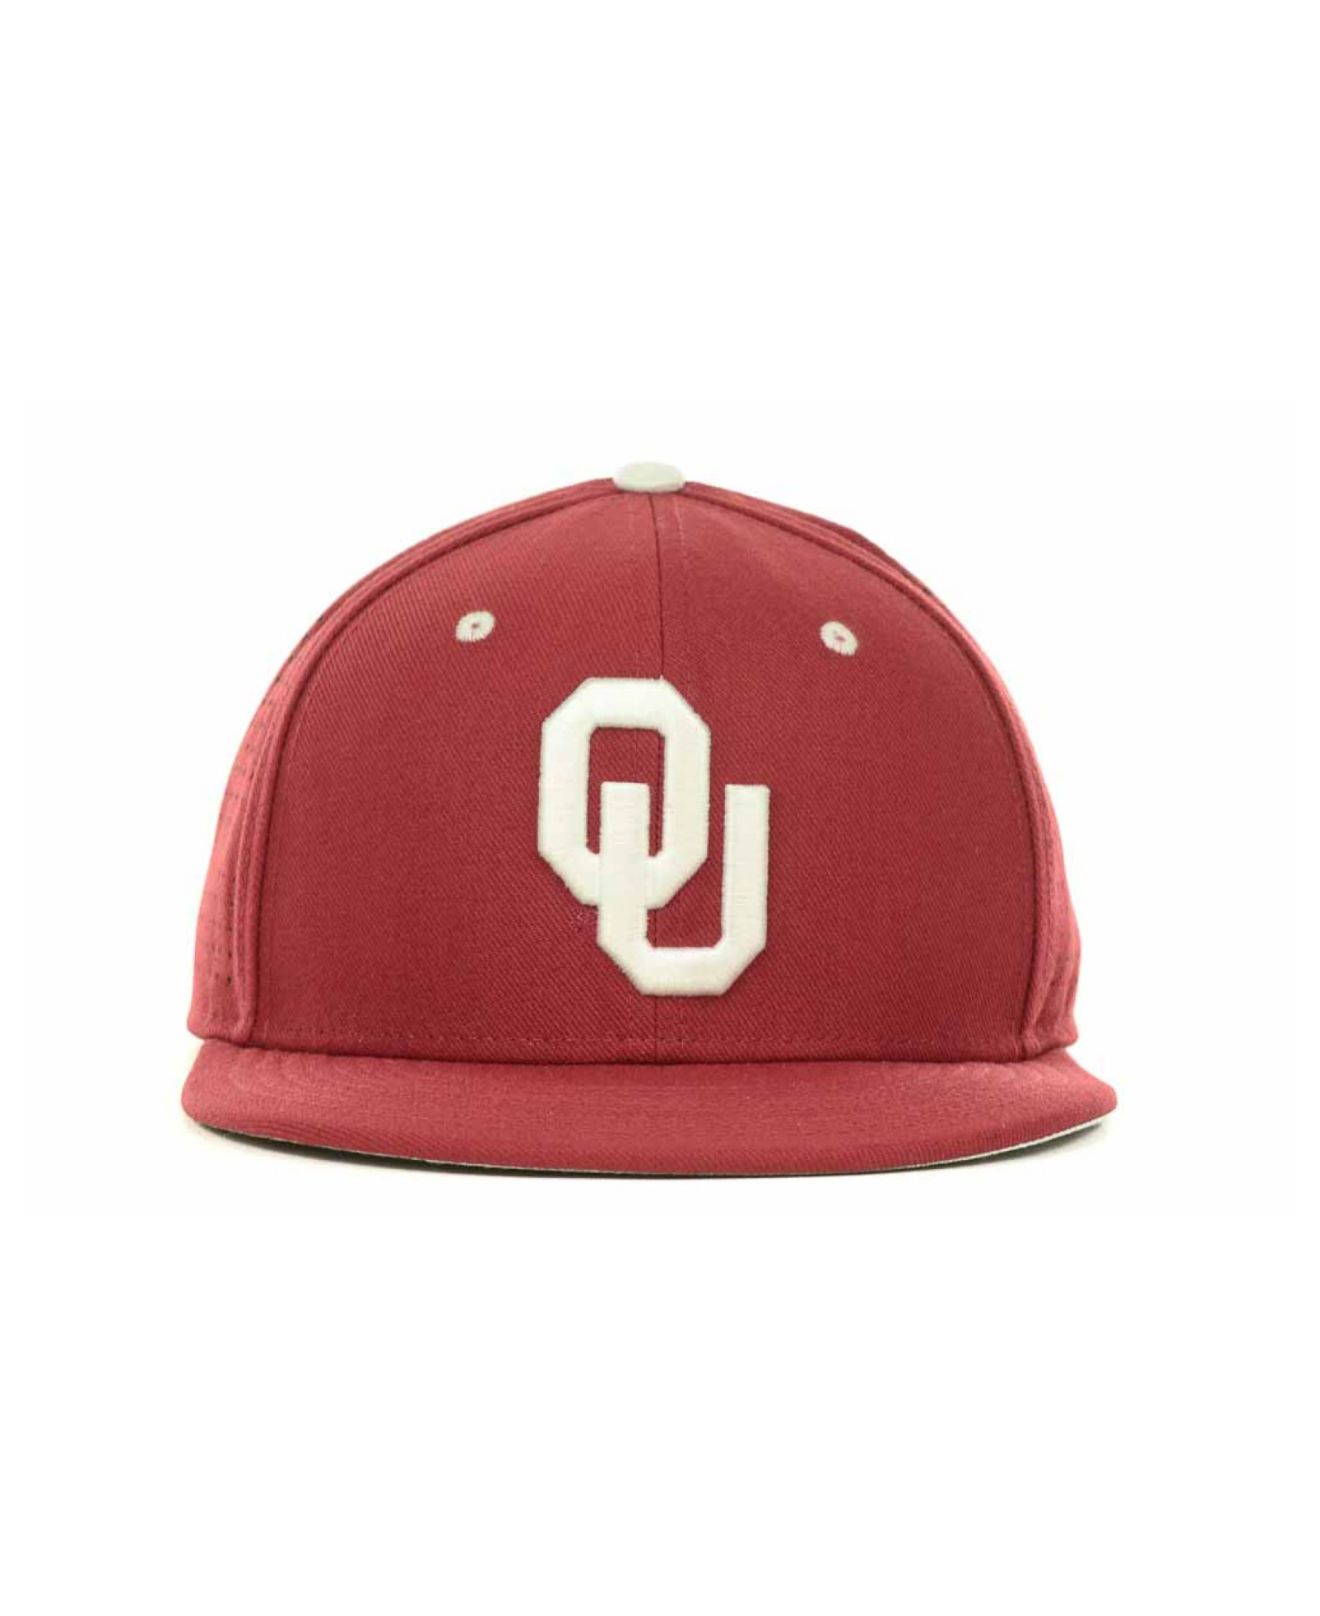 huge selection of accb1 d5361 Nike Oklahoma Sooners Ncaa Authentic Vapor Fitted Cap in Red for Men ...